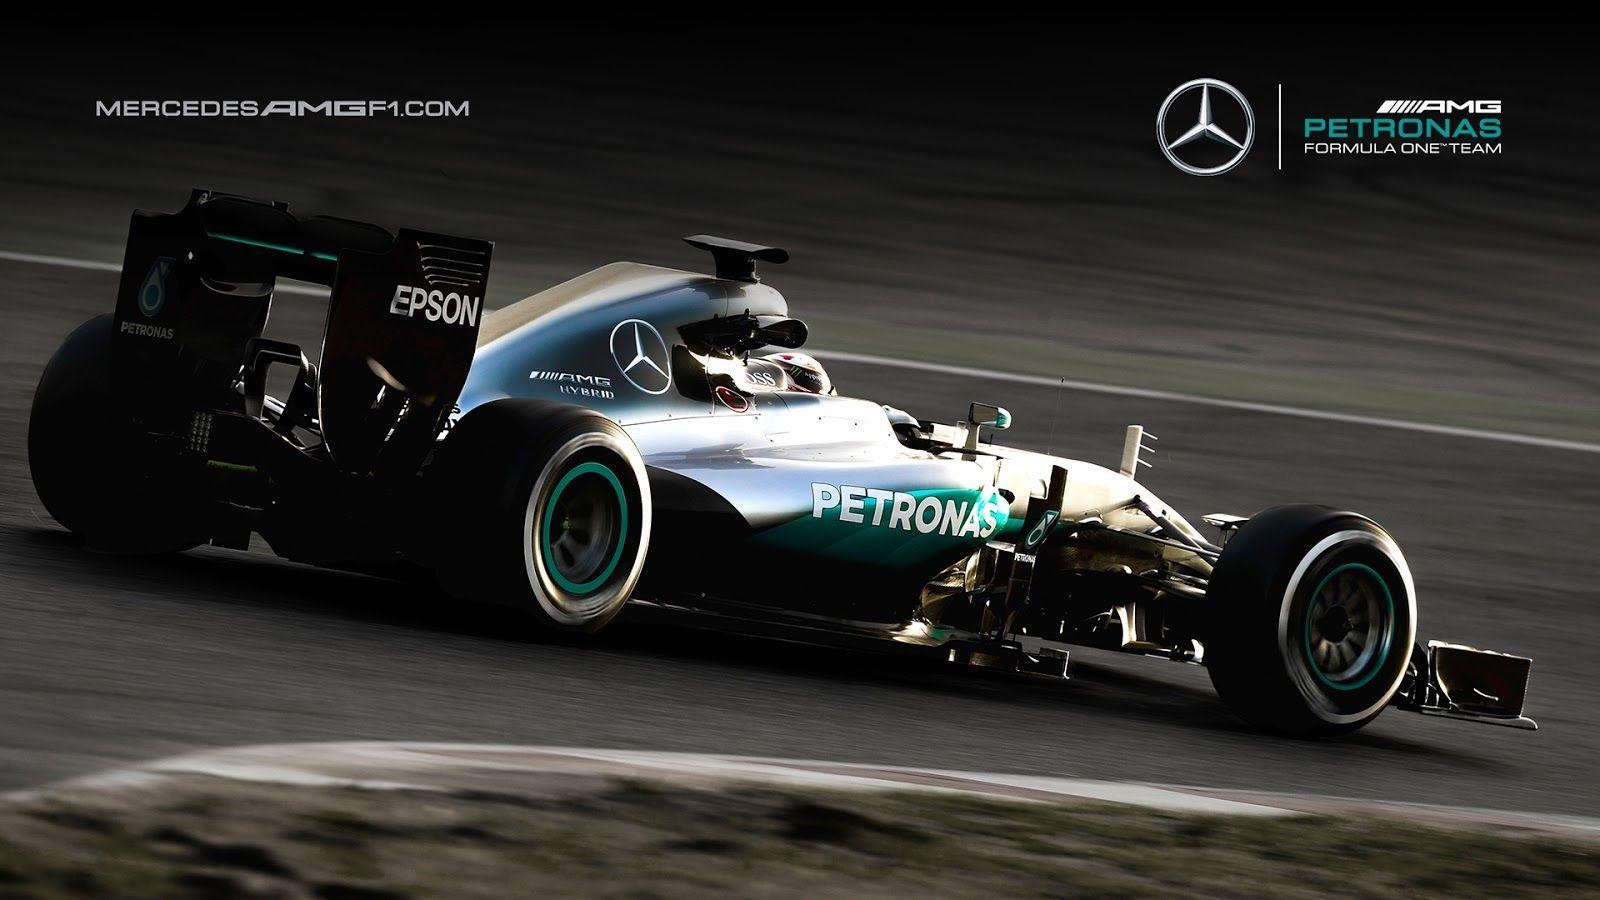 Mercedes f1 wallpapers wallpaper cave for Mercedes benz f1